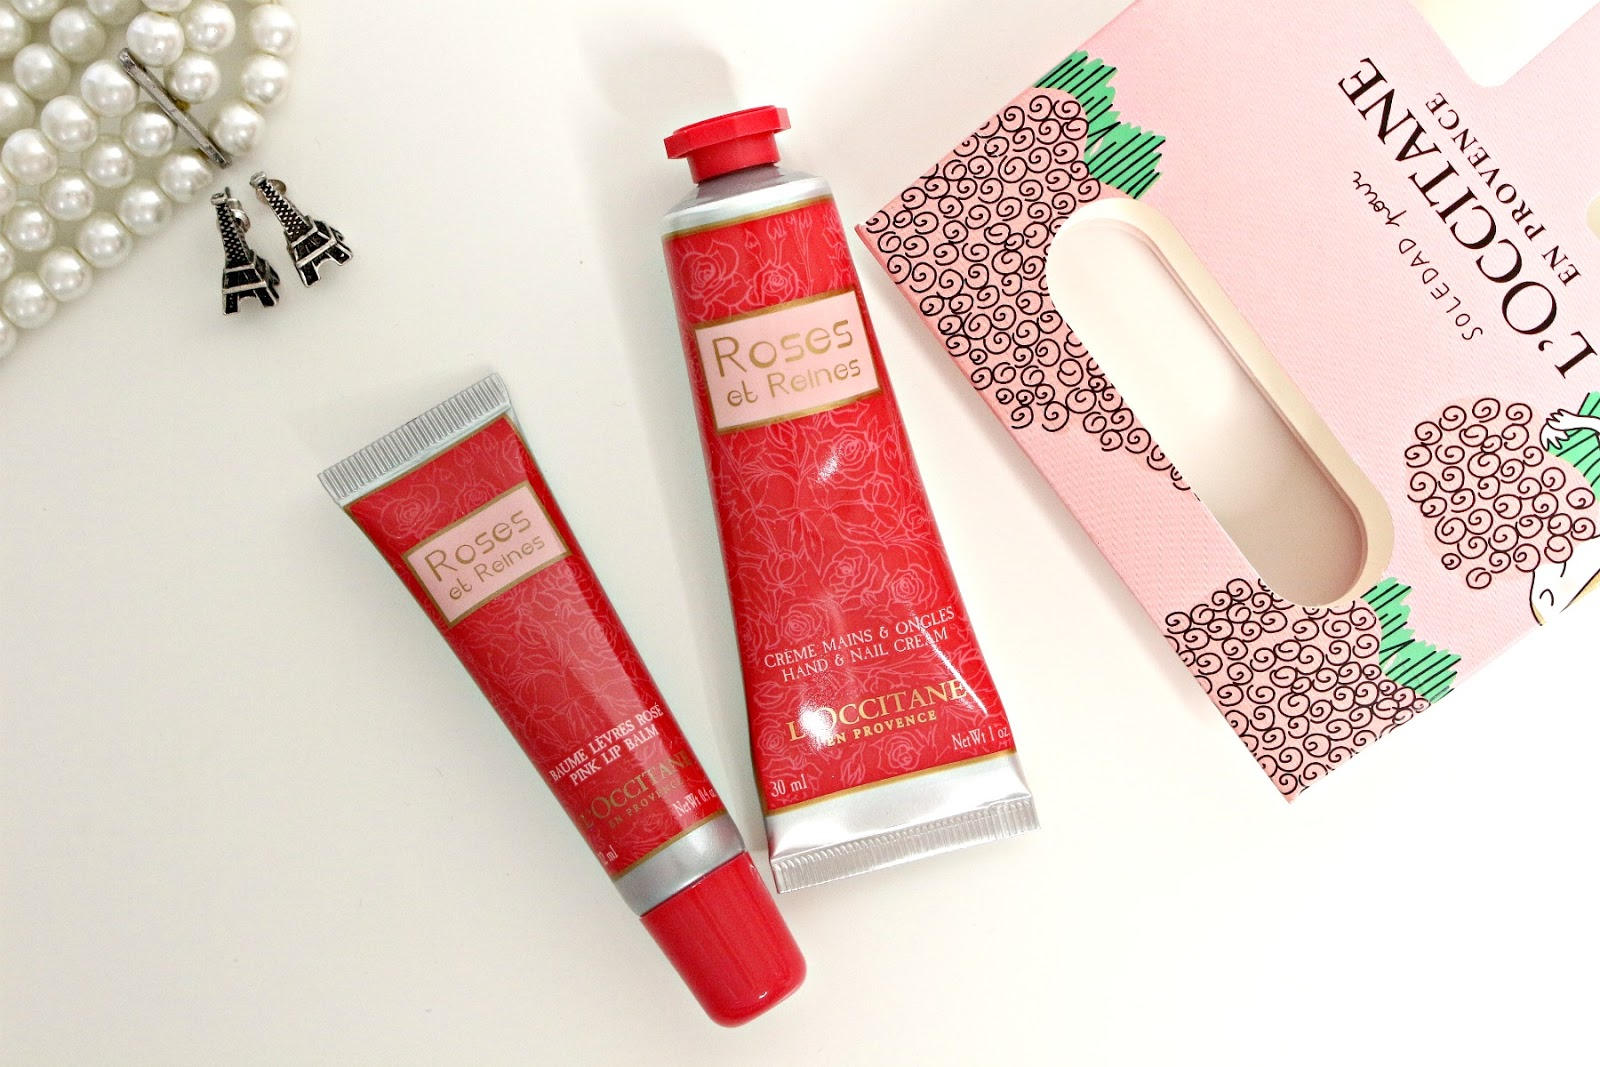 L'Occitane Rose Collector kit